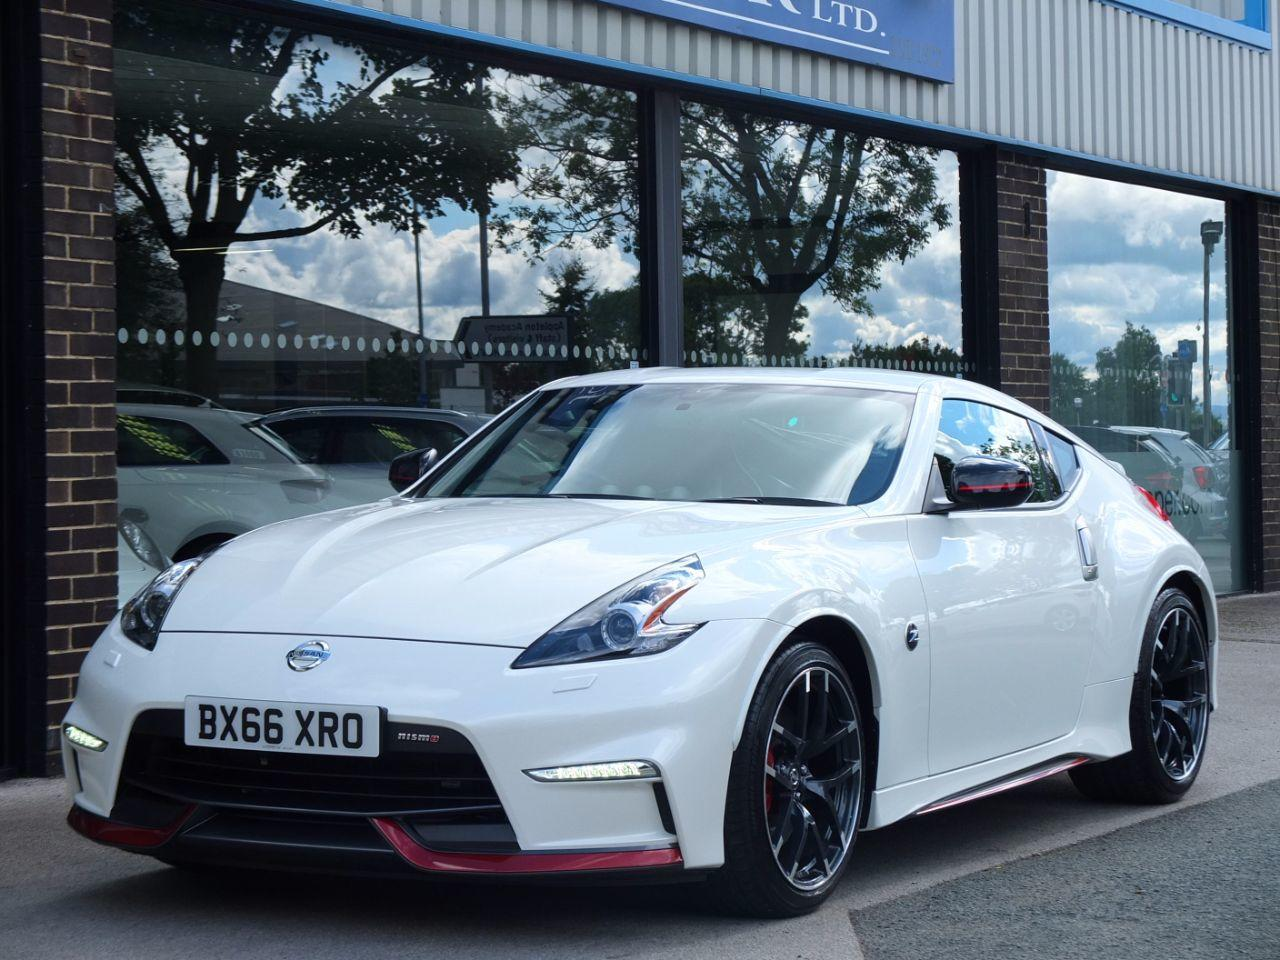 Nissan 370Z 3.7 V6 Nismo 344ps Coupe Petrol Storm White Metallic